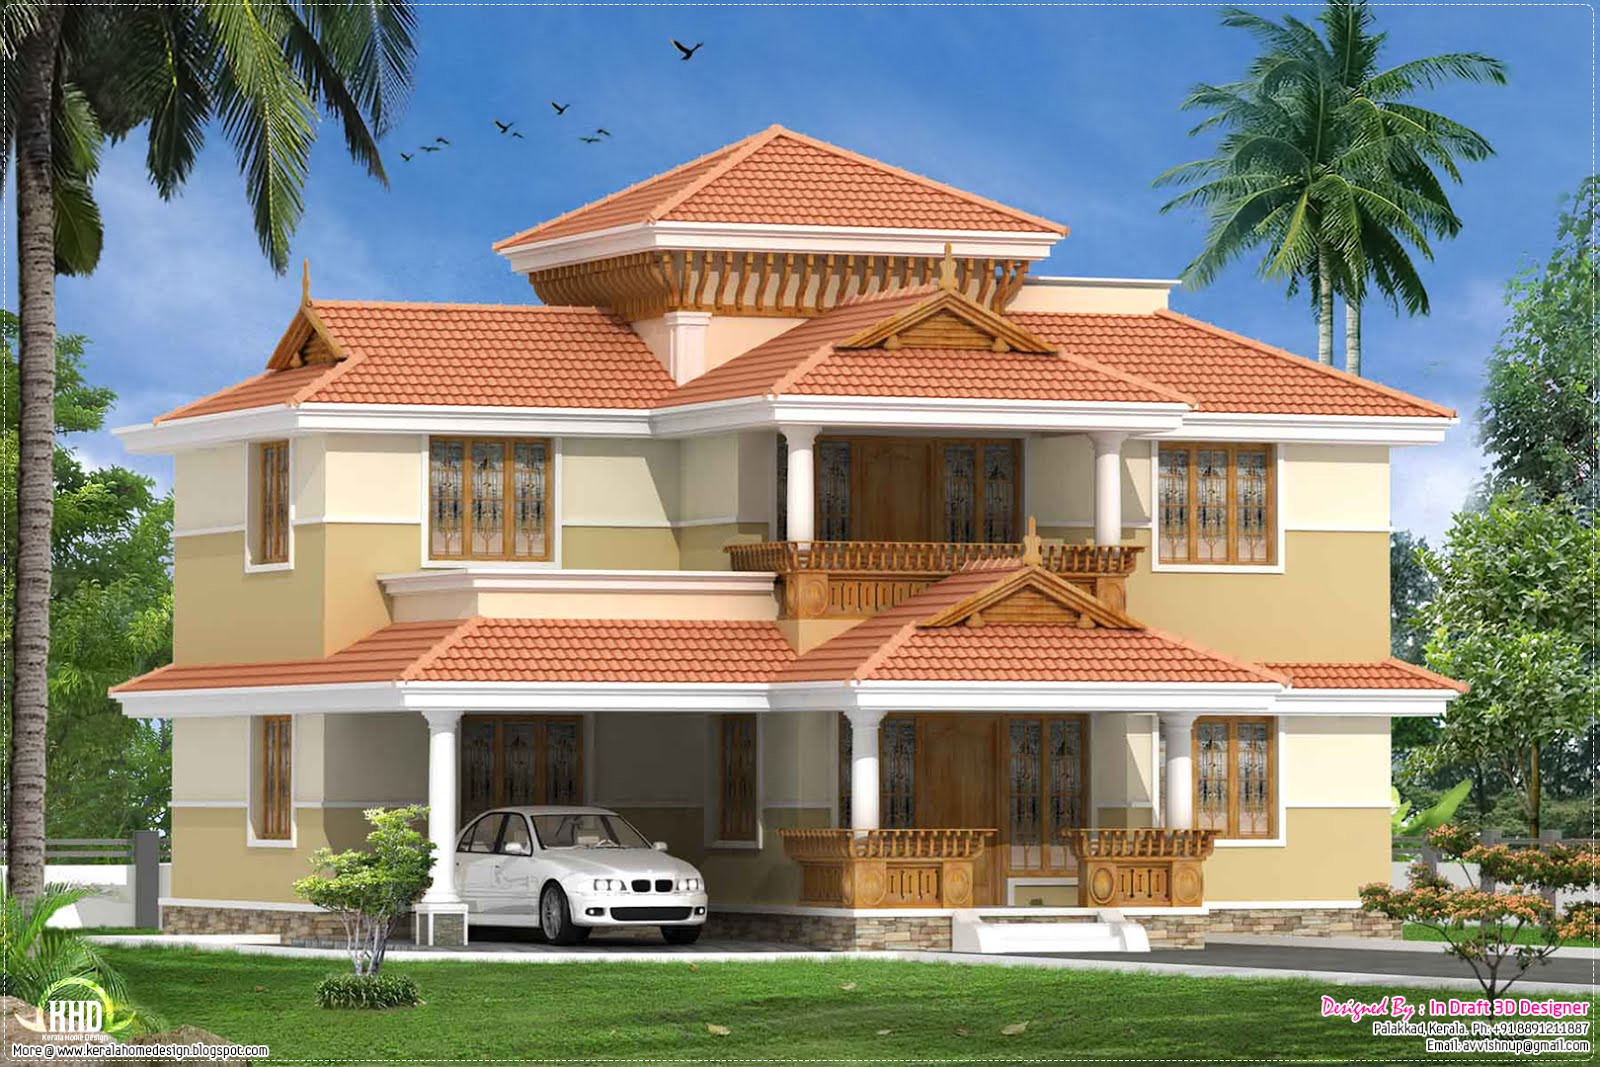 Kerala Traditional 4 Bed Room Villa 2060 House